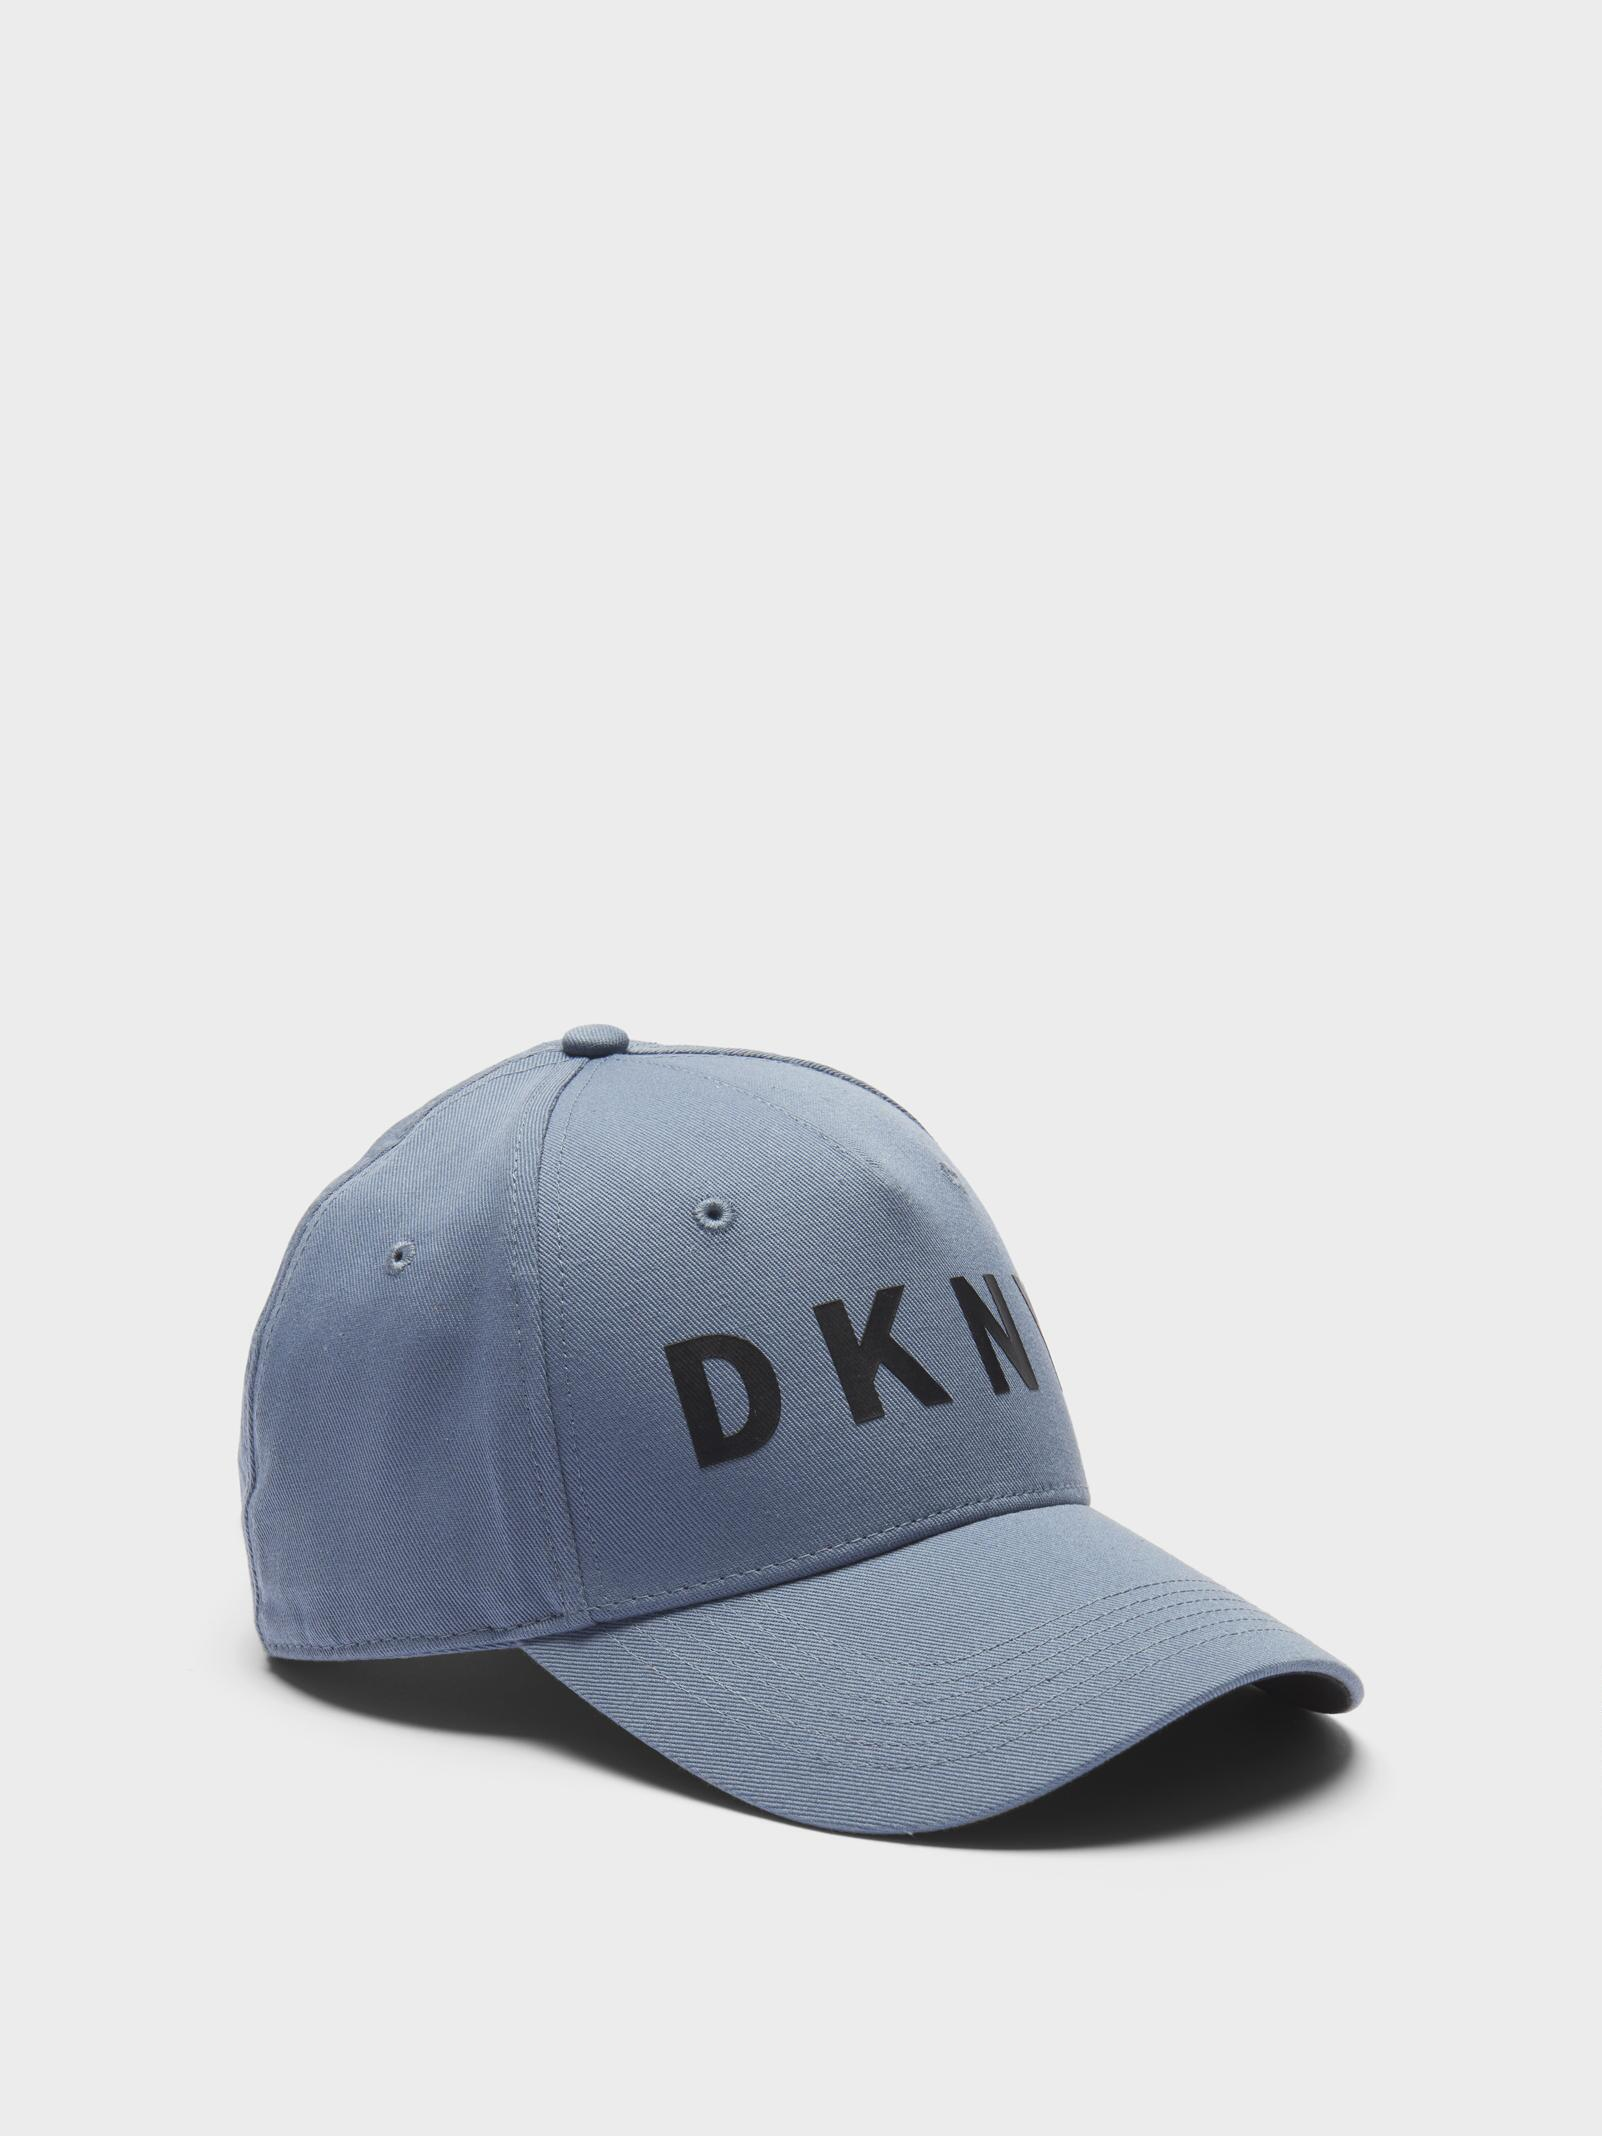 e3d5fccb2a1 Lyst - DKNY Classic Logo Hat in Blue